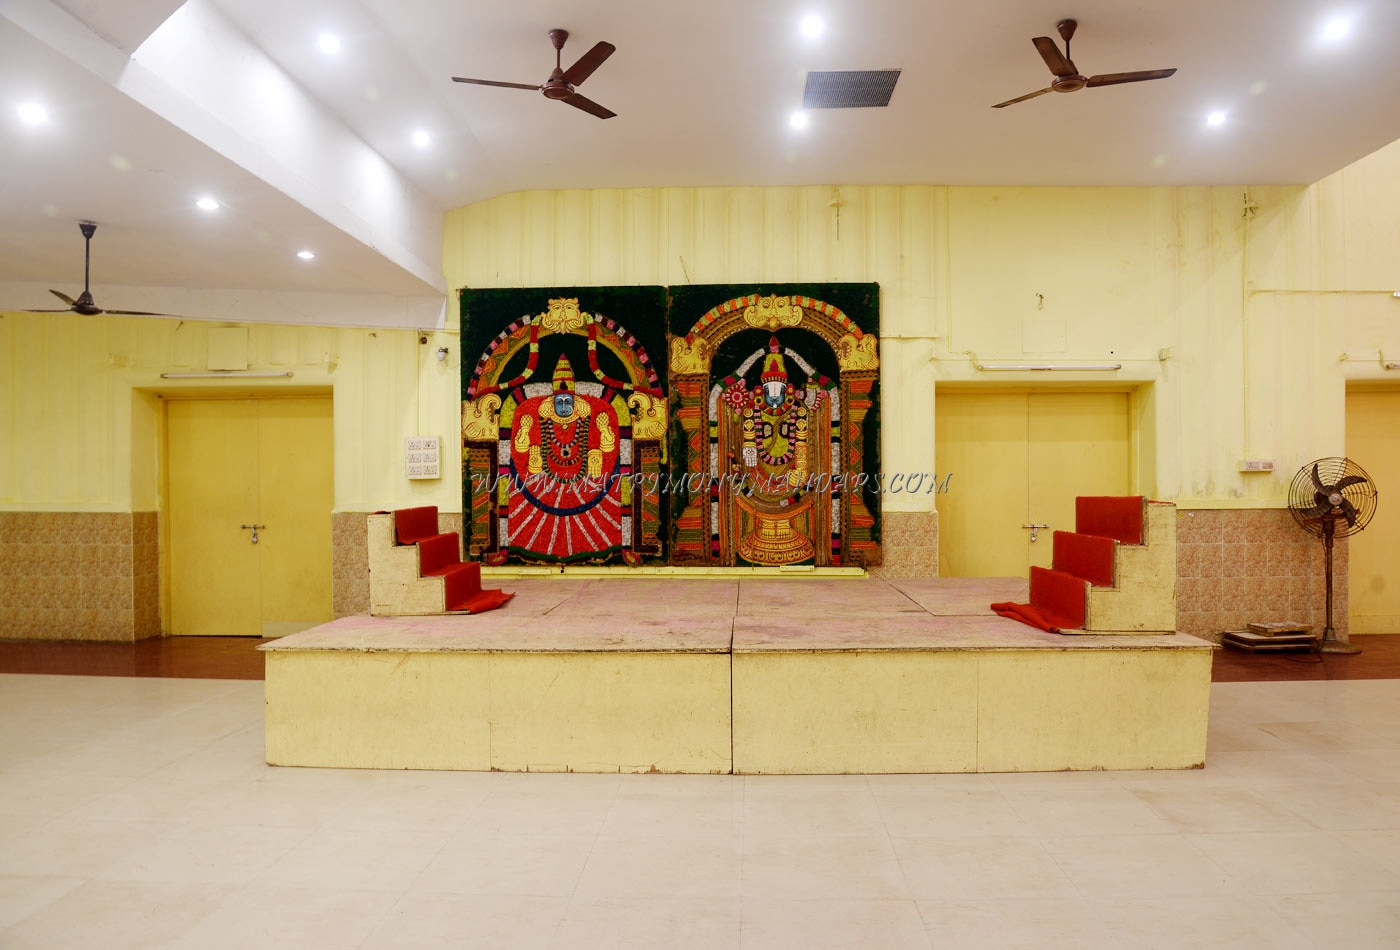 Find the availability of the Kamadhenu Kalyana Mandapam (A/C) in Mylapore, Chennai and avail special offers